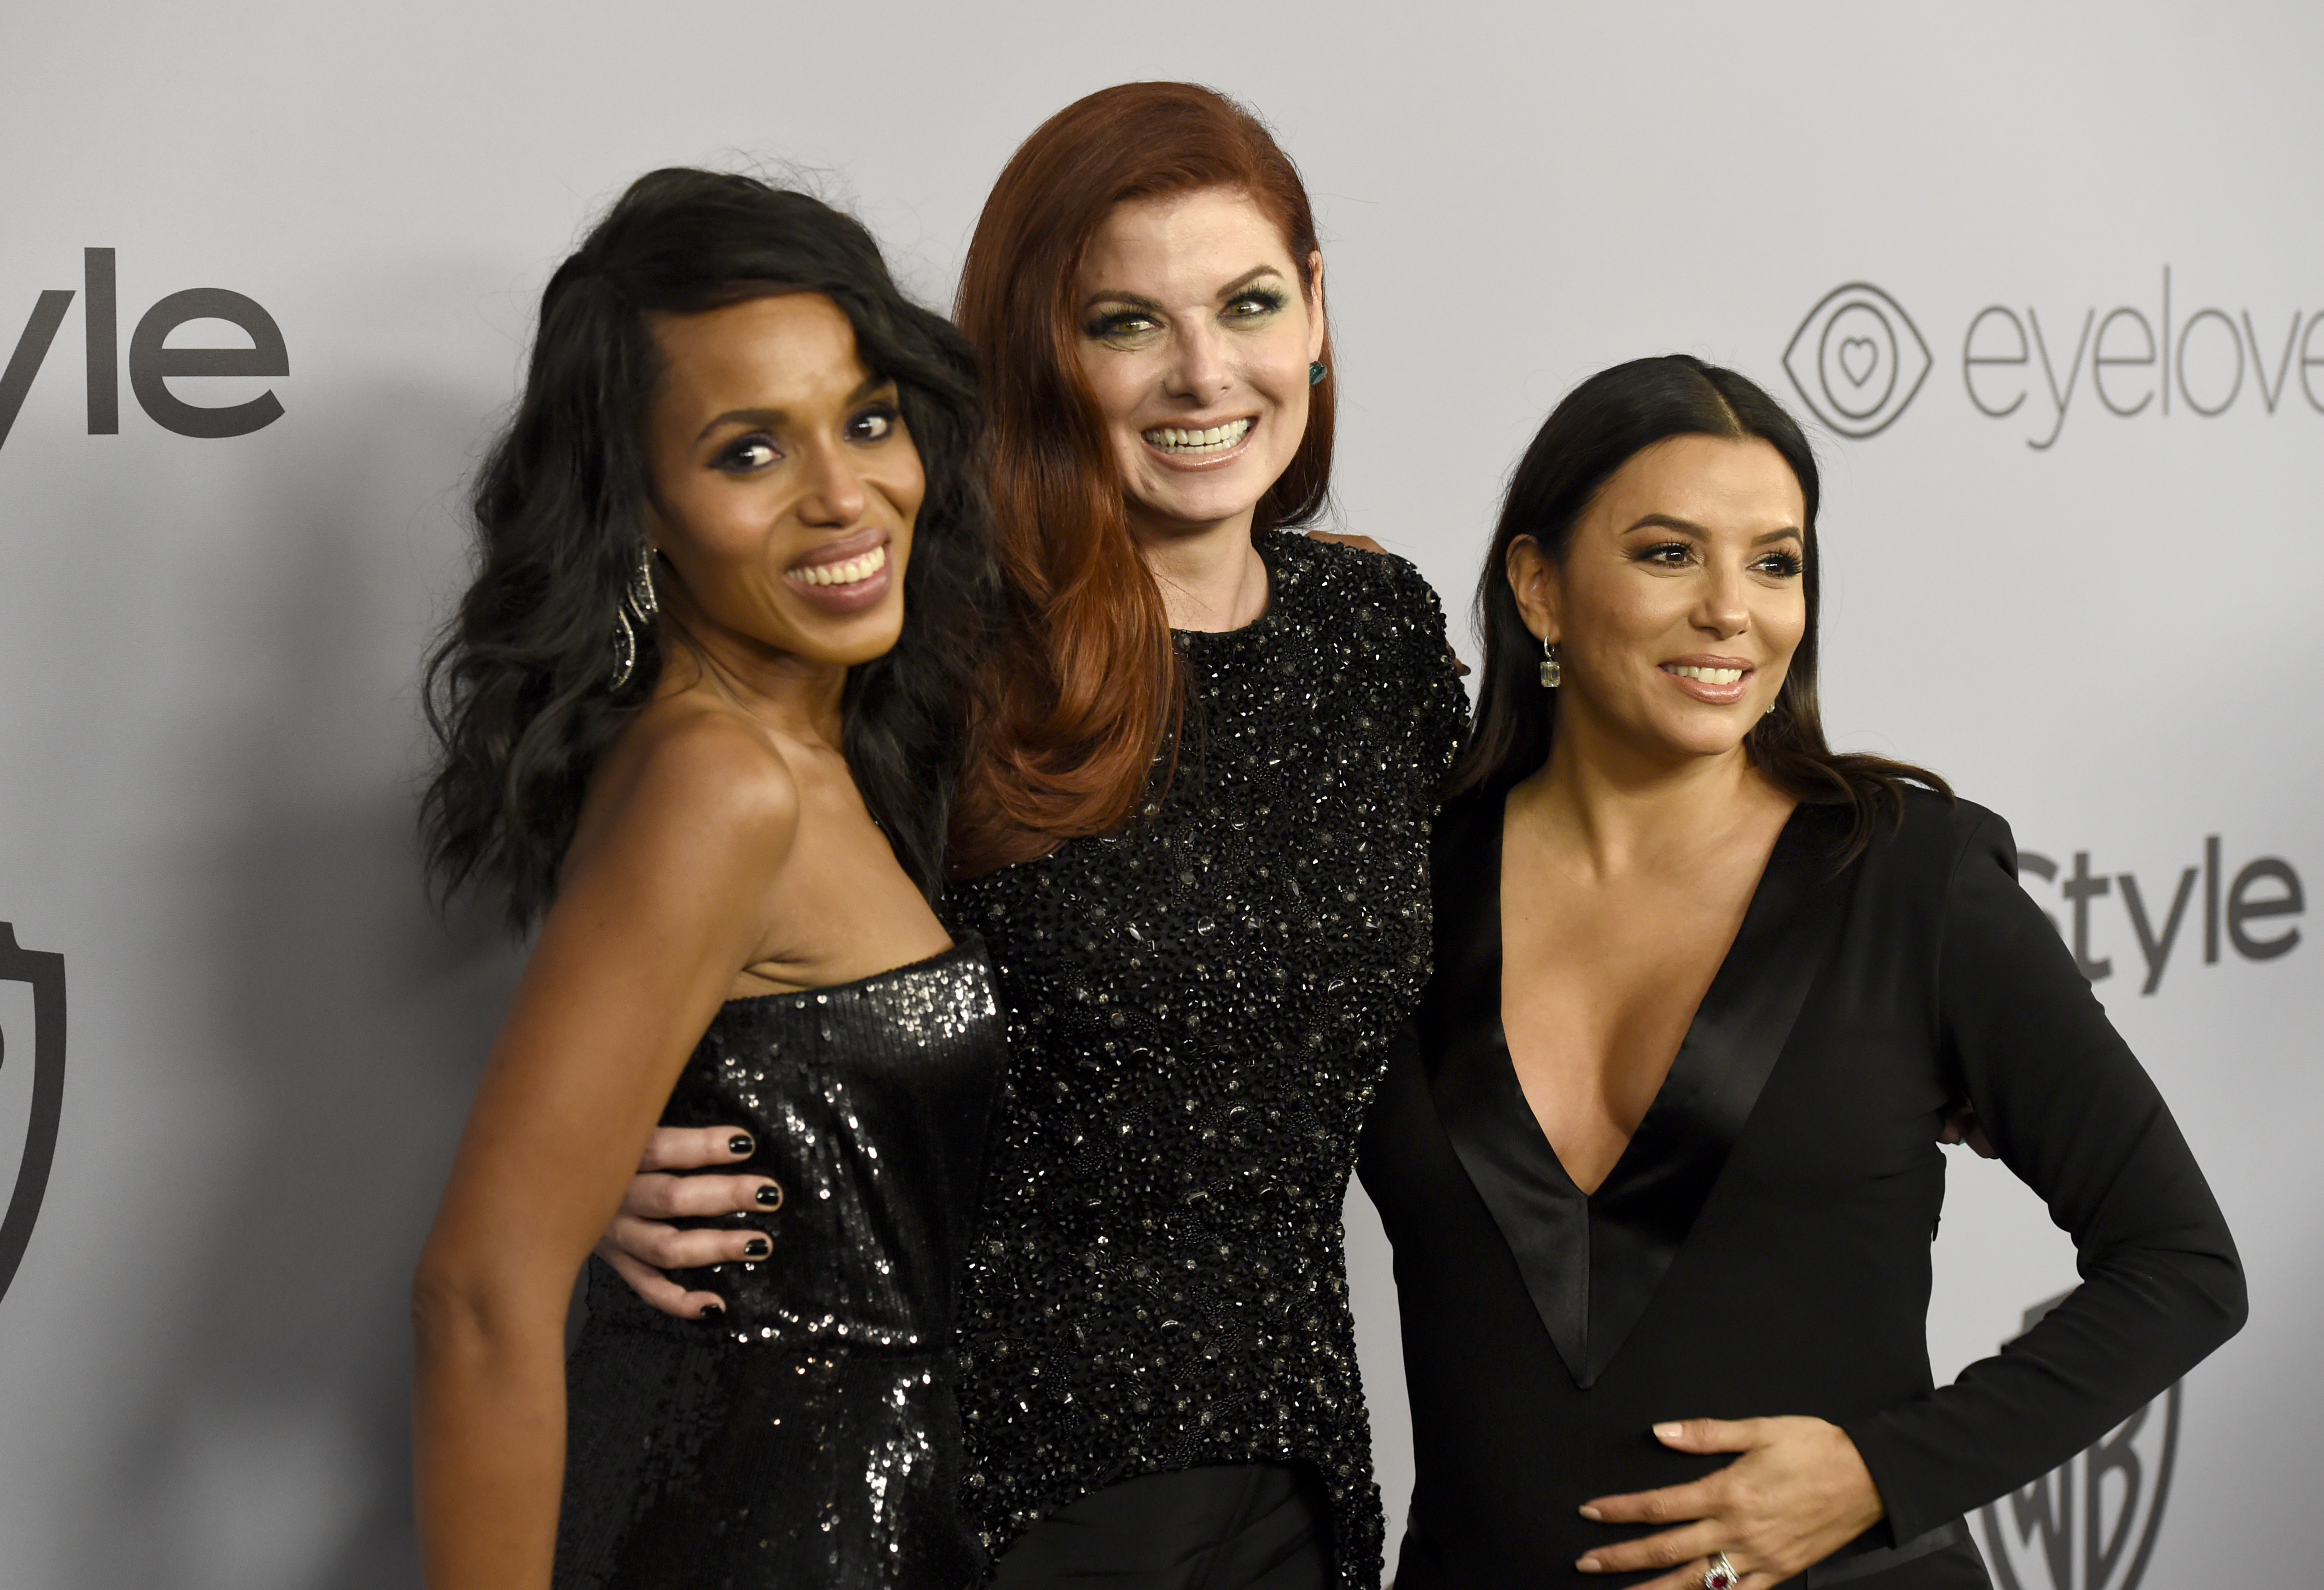 Kerry Washington, from left, Debra Messing, and Eva Longoria arrive at the InStyle and Warner Bros. Golden Globes afterparty at the Beverly Hilton Hotel on Sunday, Jan. 7, 2018, in Beverly Hills, Calif.